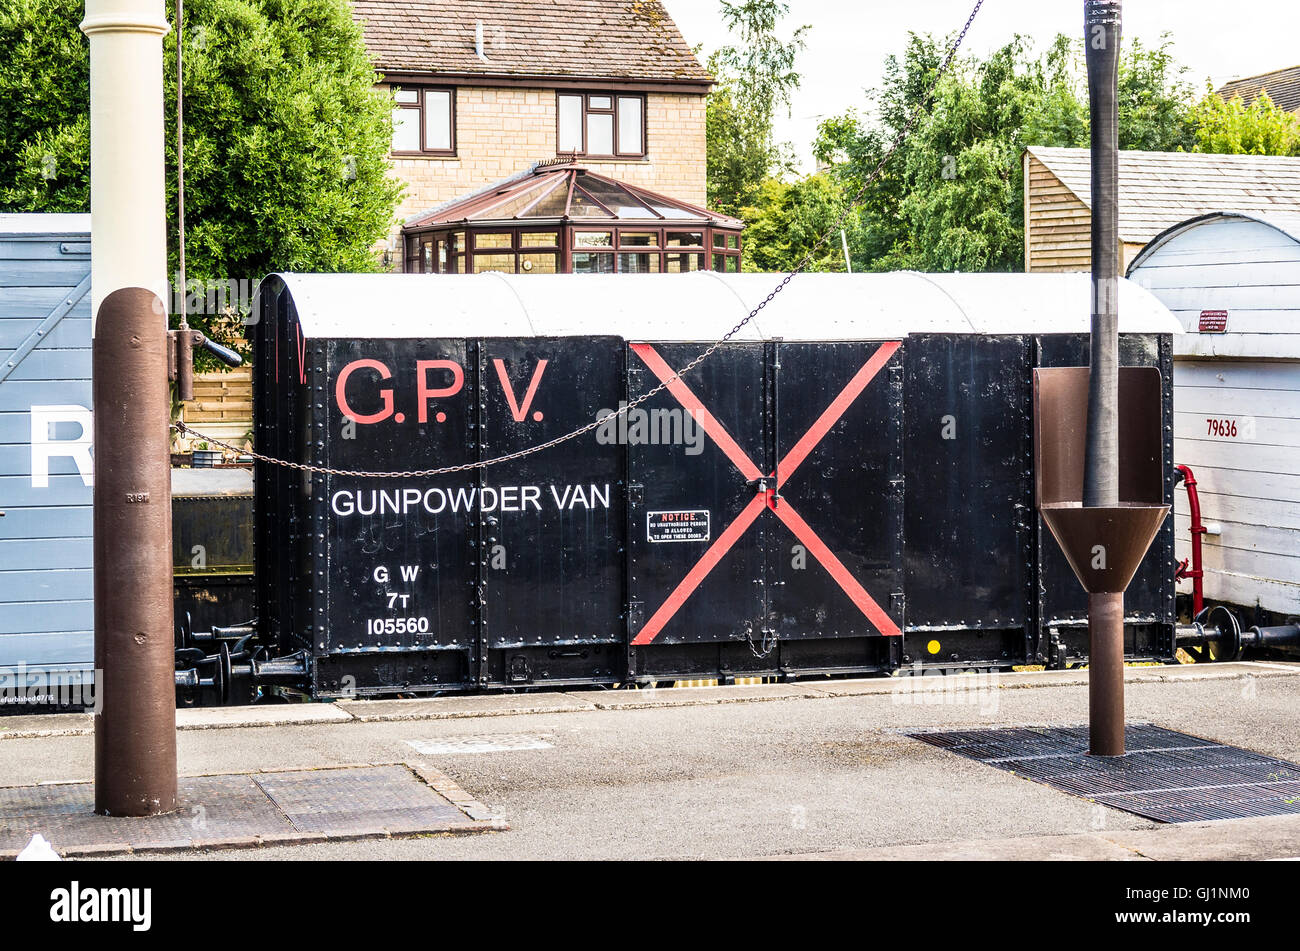 A rare van designed for conveying gunpowder by rail in UK - Stock Image